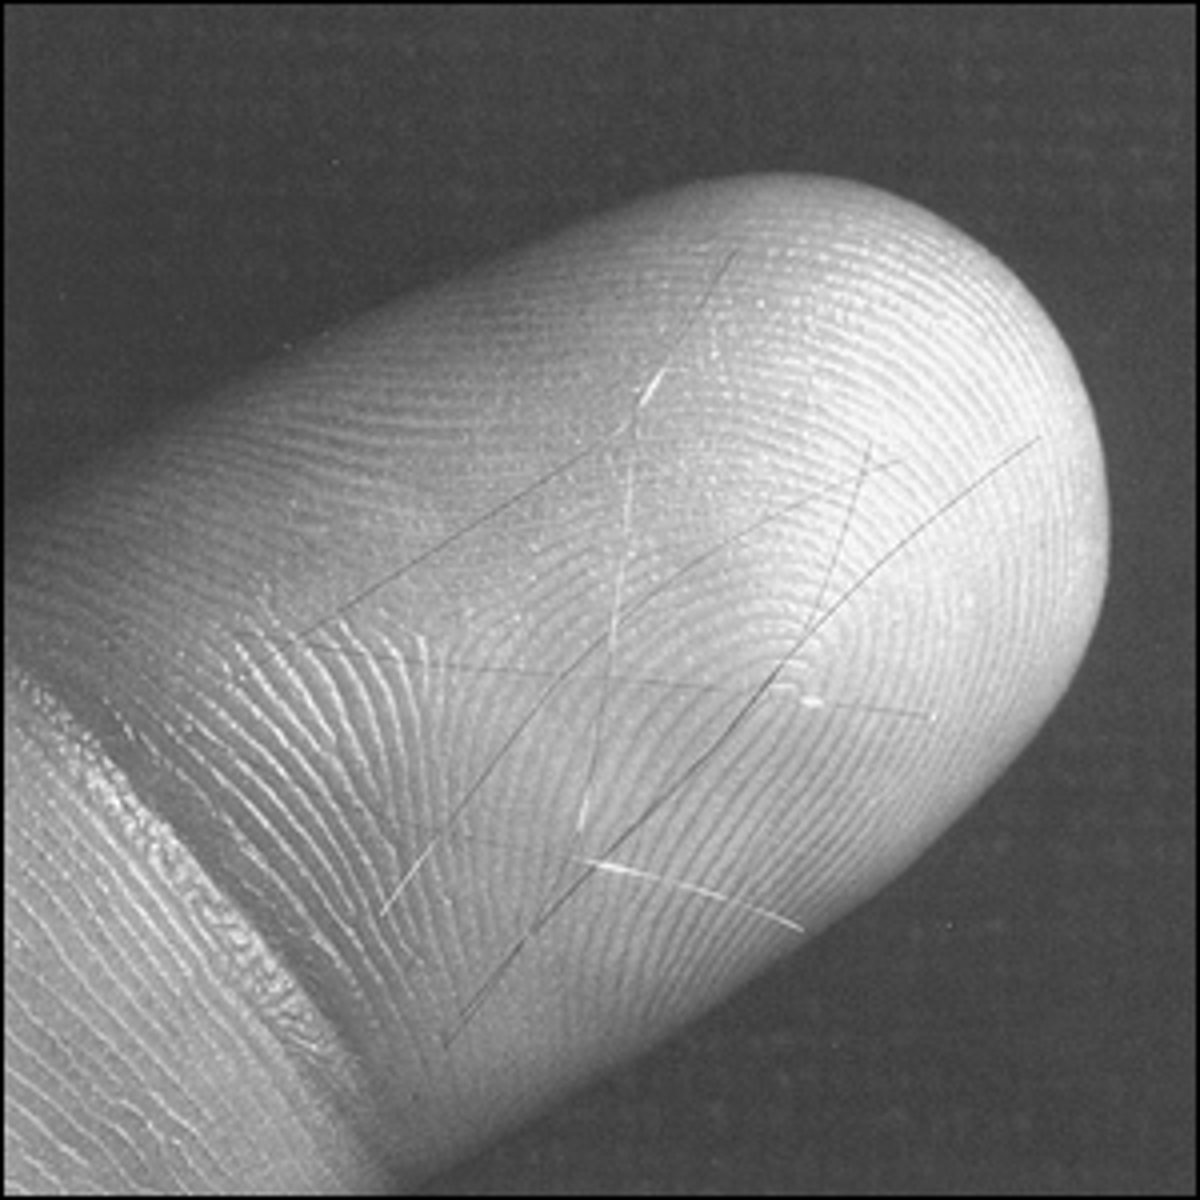 A photo showing the size of the tiny copper needles that were launched into space versus a human finger.